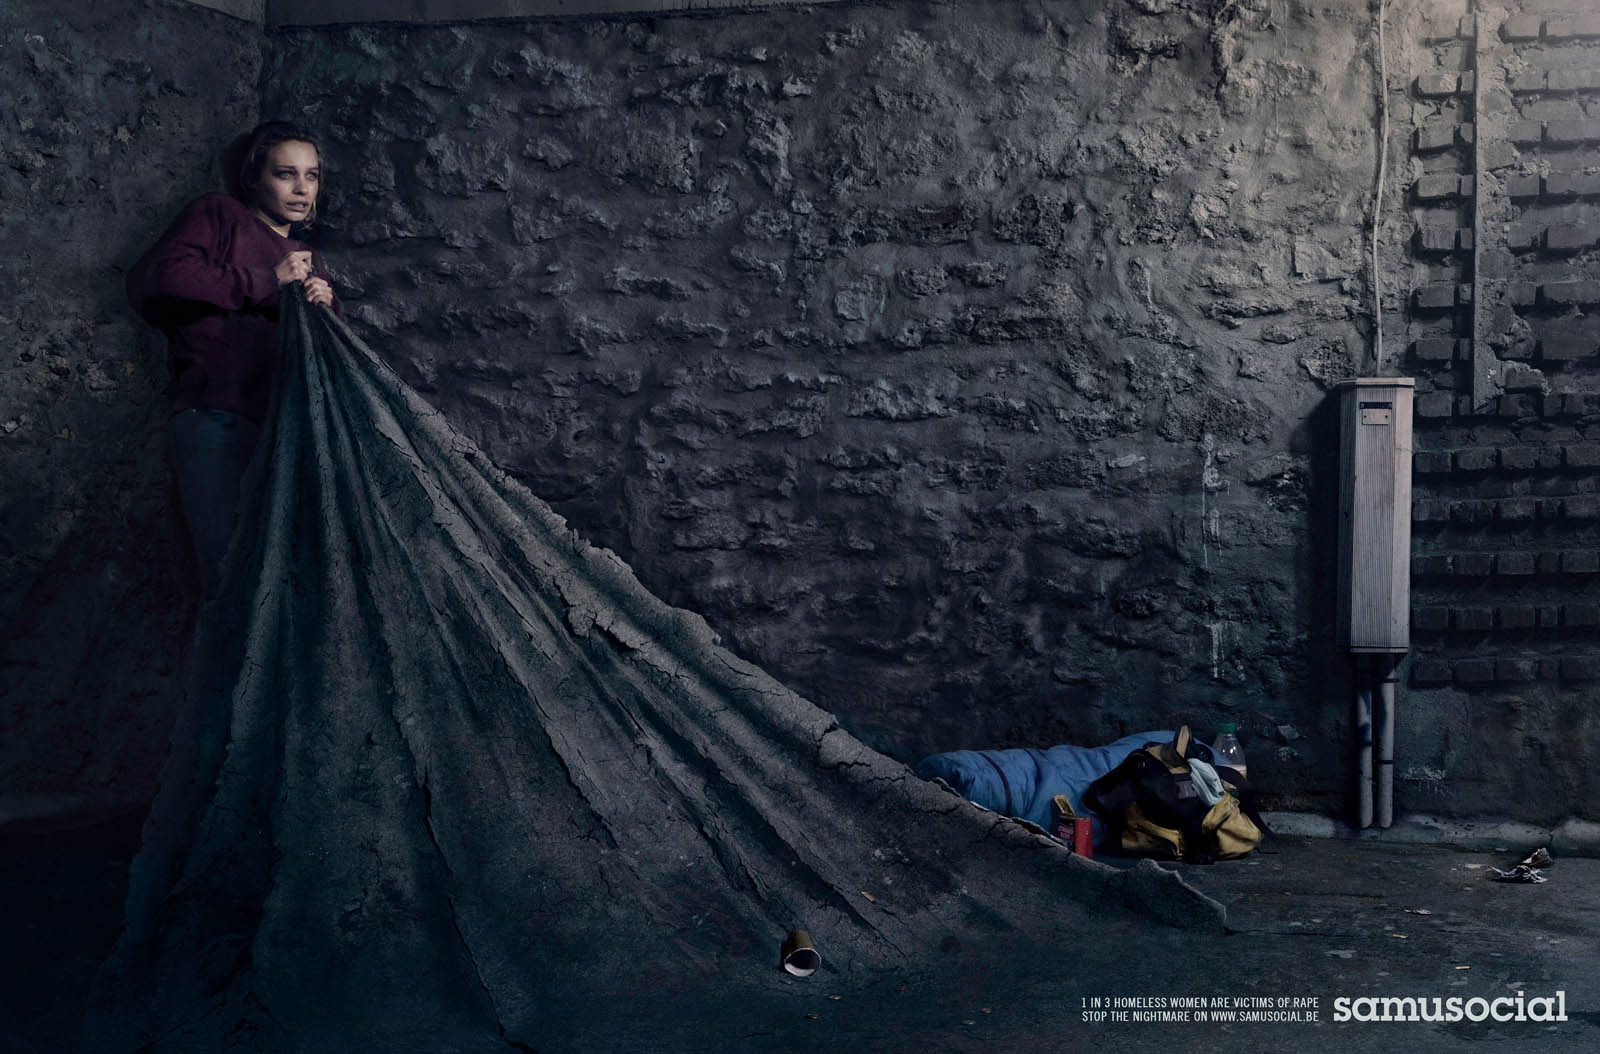 llllitl-samu-social-rape-viol-femme-women-sans-abri-homeless-clochard-bum-publicité-print-advertising-publicis-conseil-paris-france-mai-2012